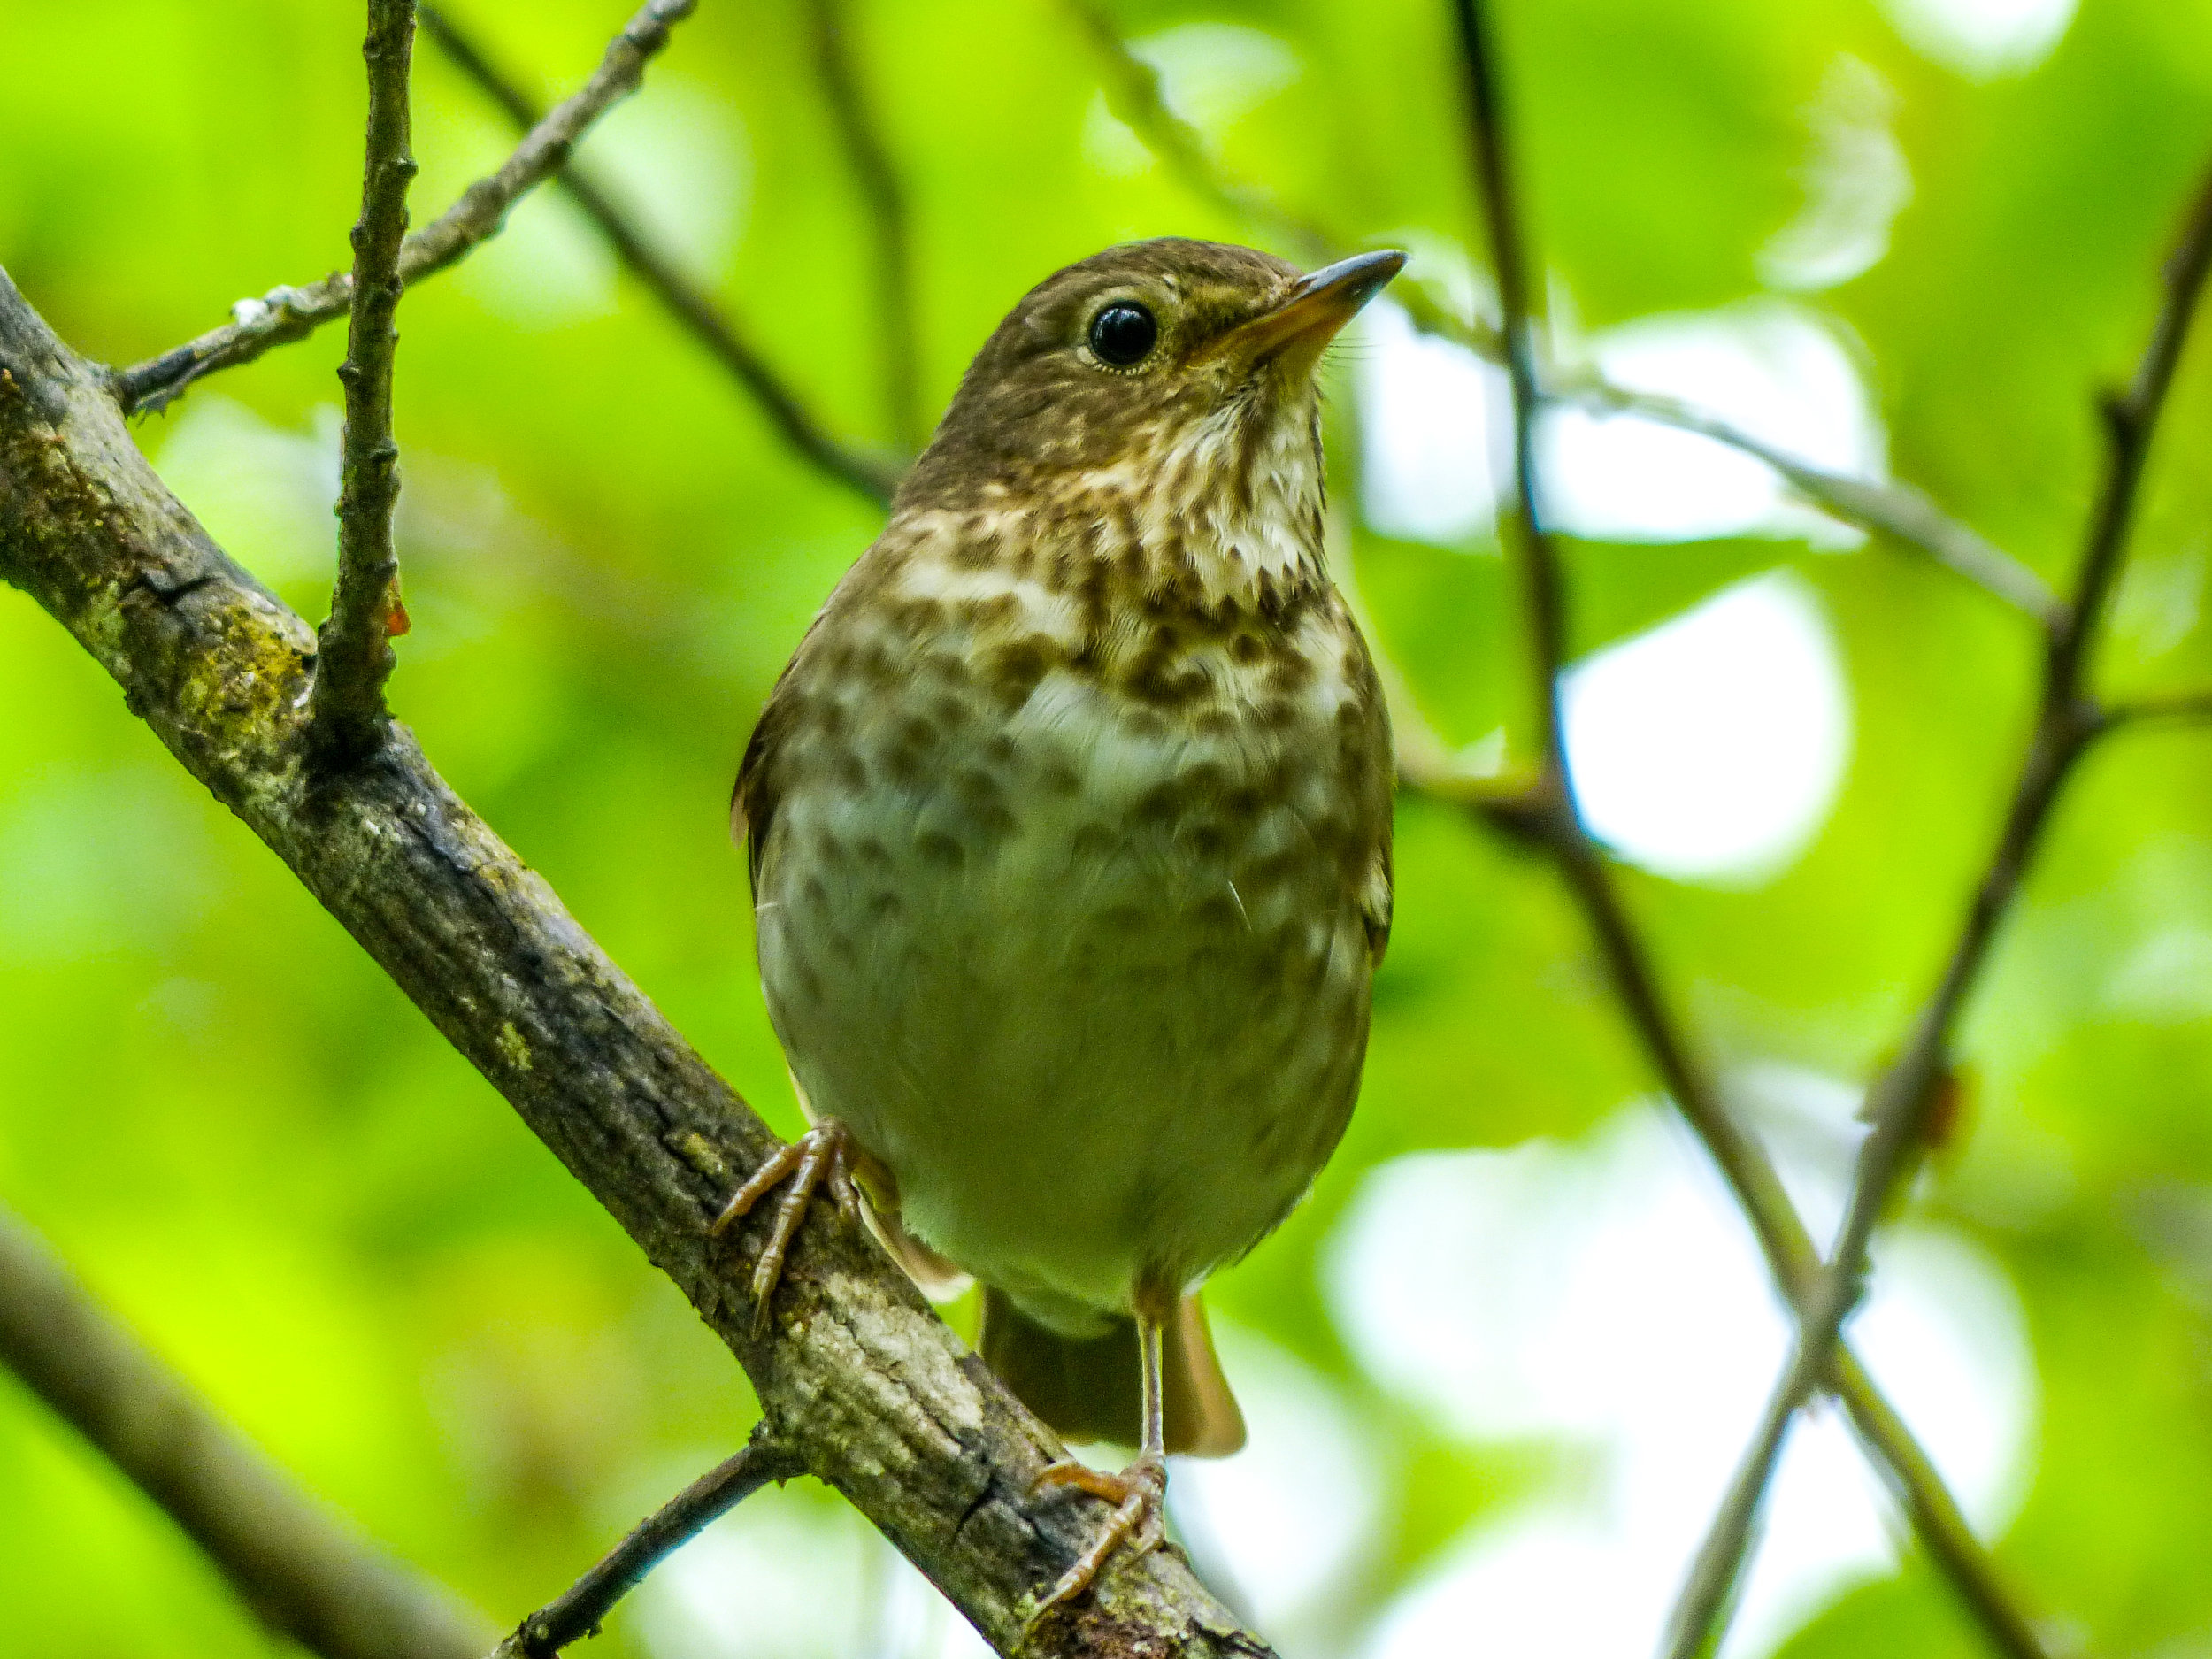 Hermit thrush © David Ryan / TNC